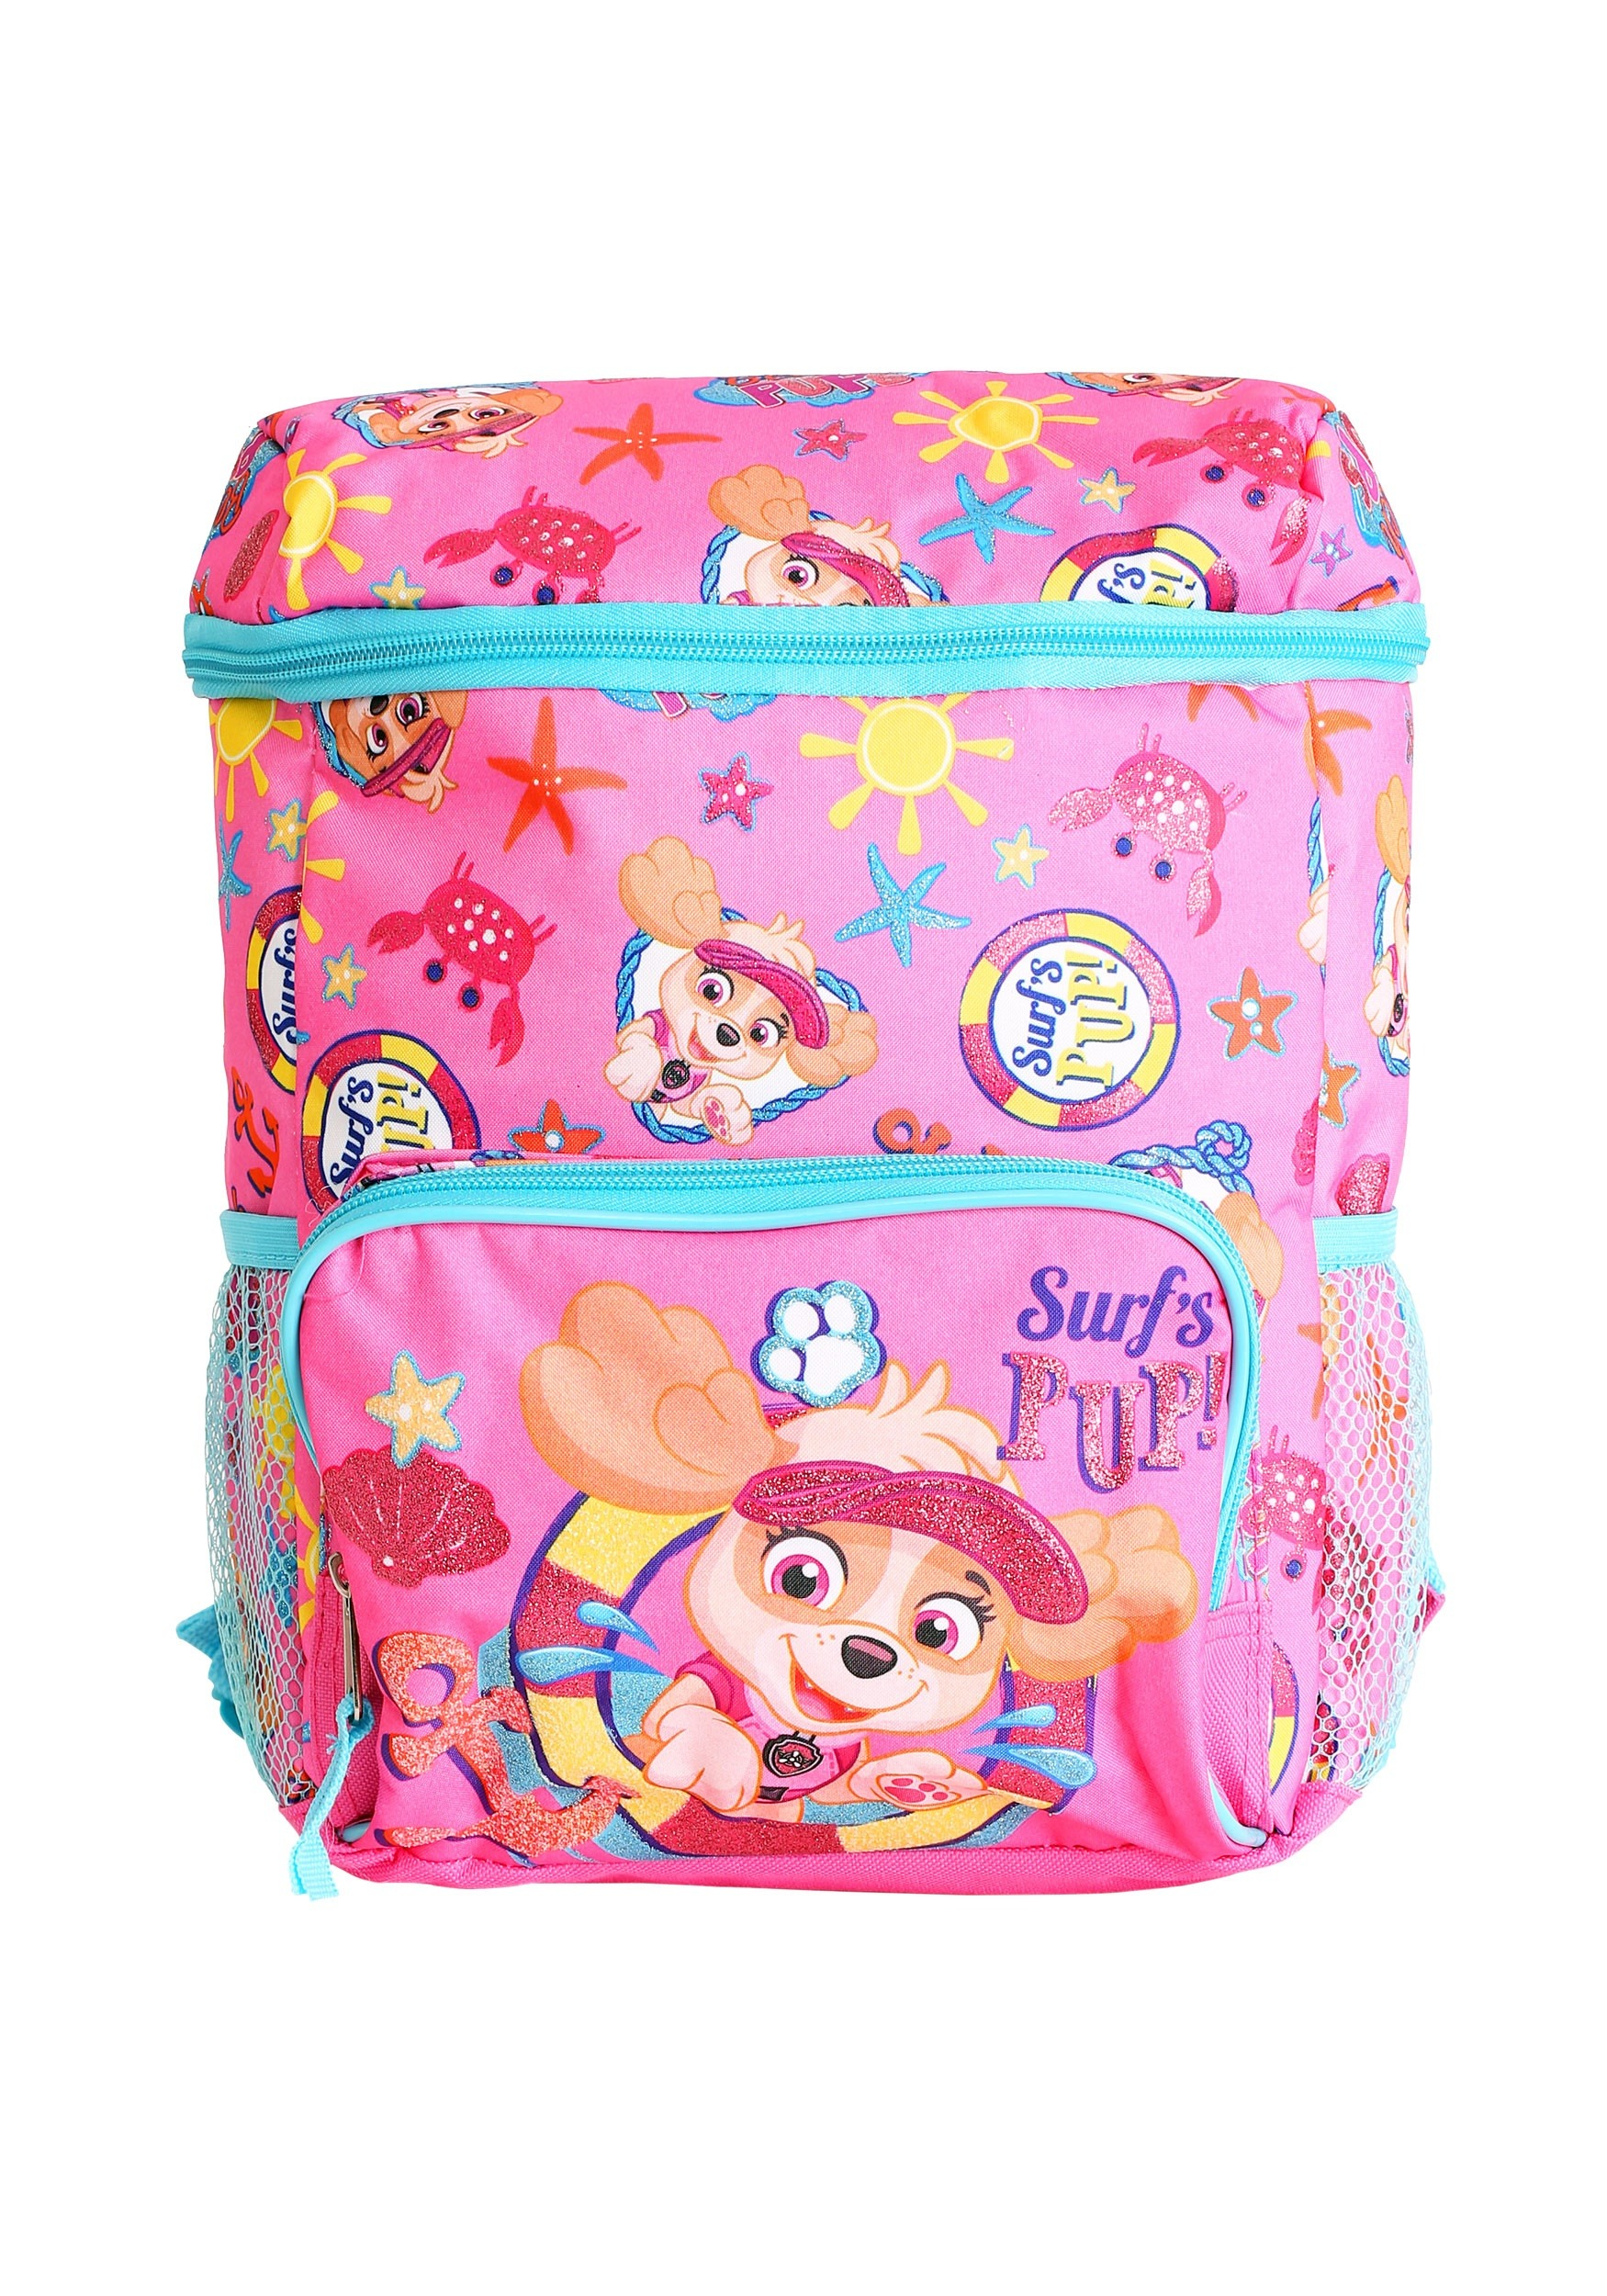 Kids_Paw_Patrol_Skye_12_Insulated_Backpack